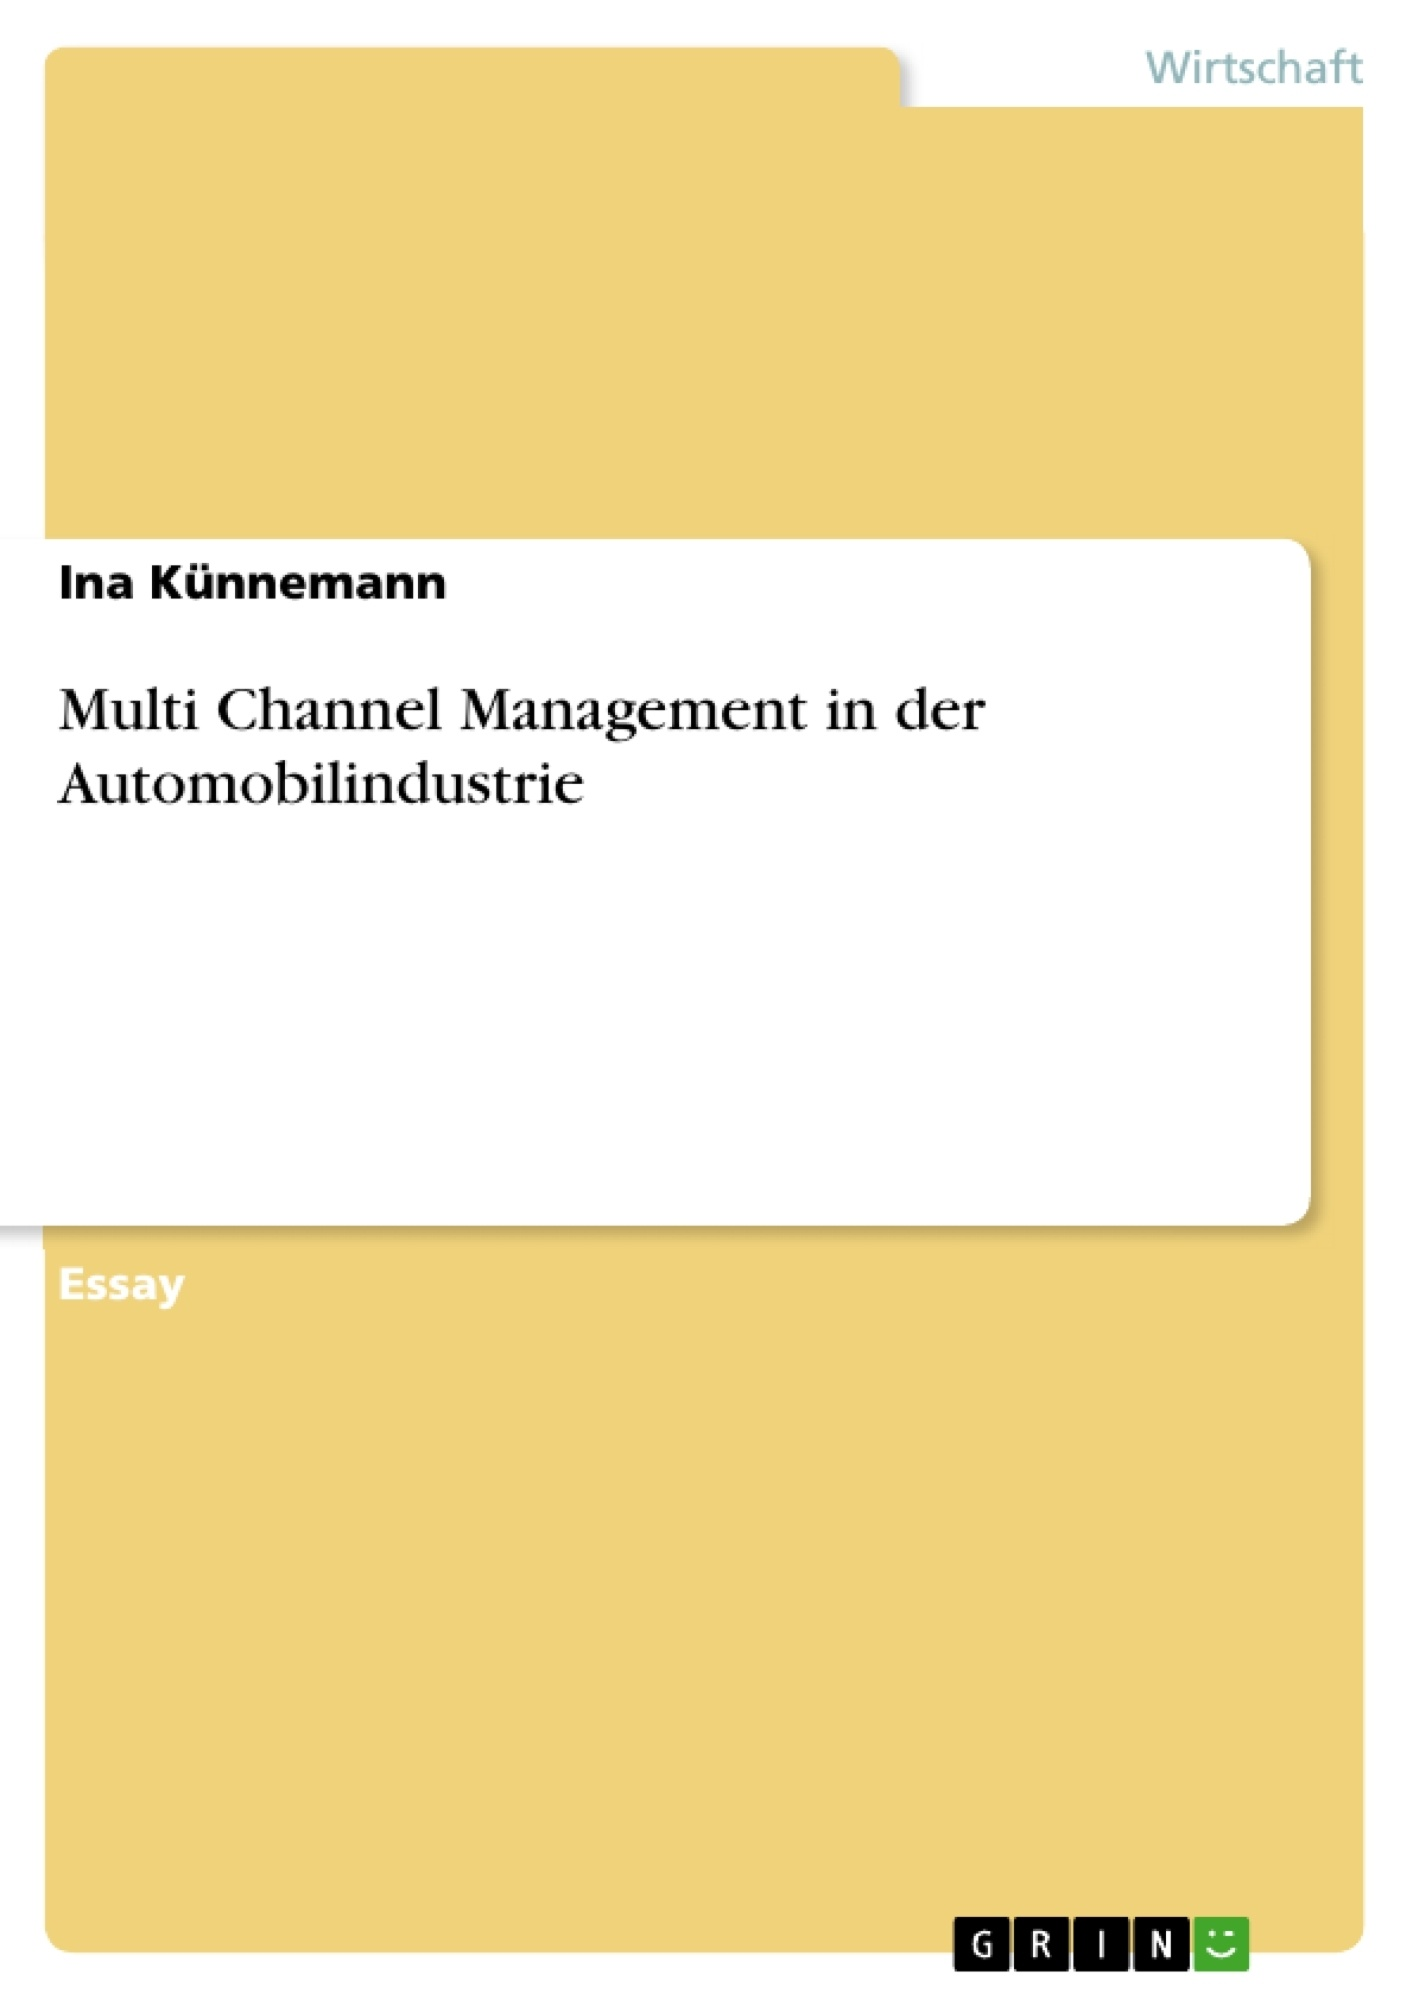 Titel: Multi Channel Management in der Automobilindustrie